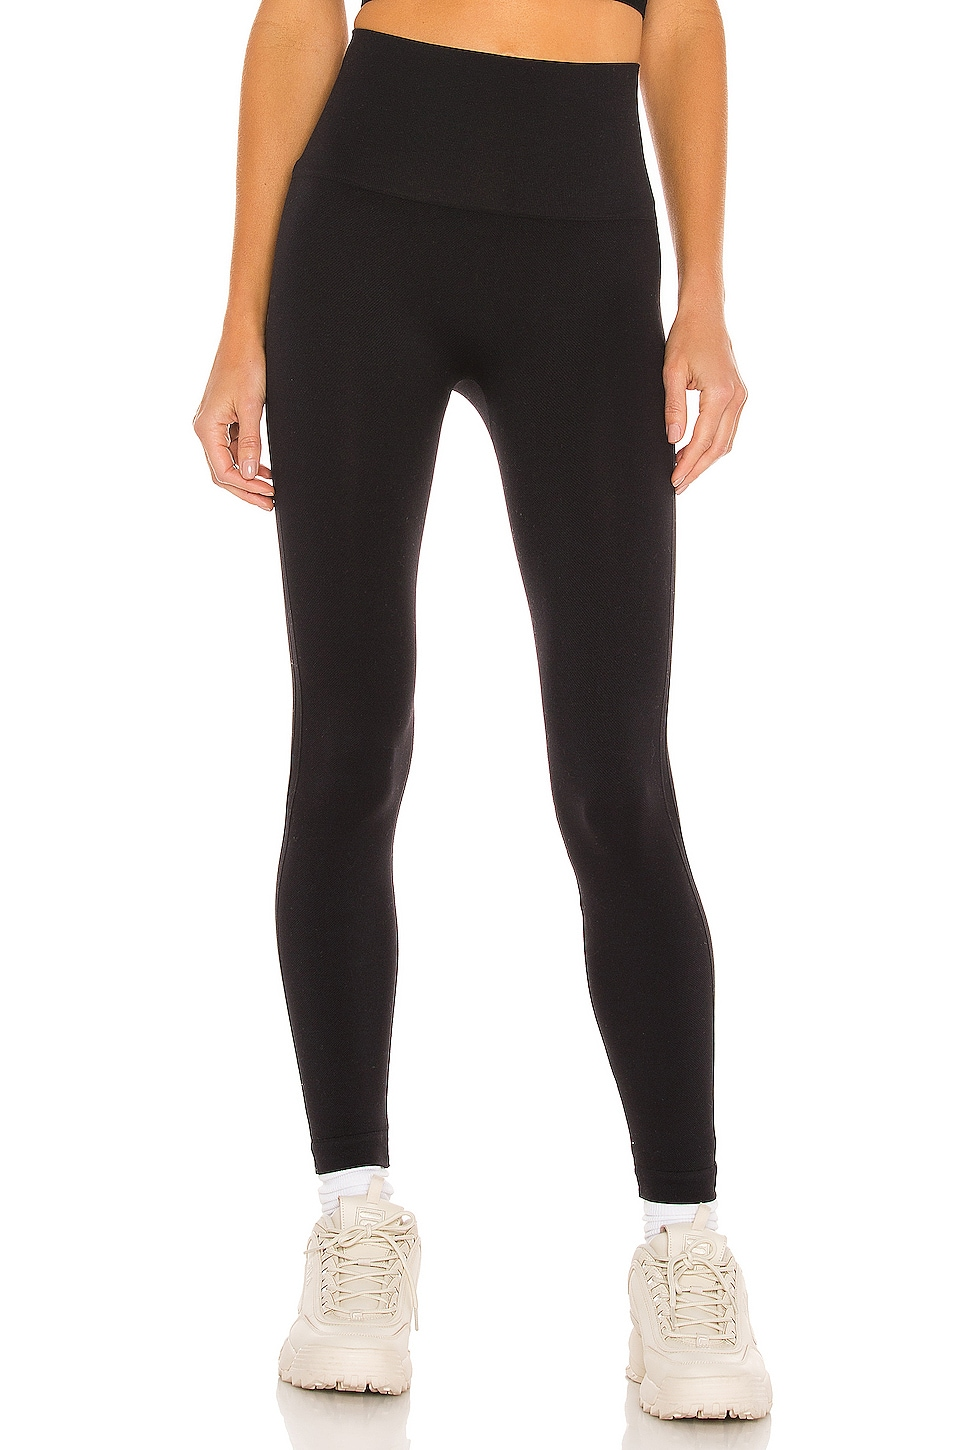 Look At Me Now Legging                   SPANX                                                                                                                             CA$ 88.93 9